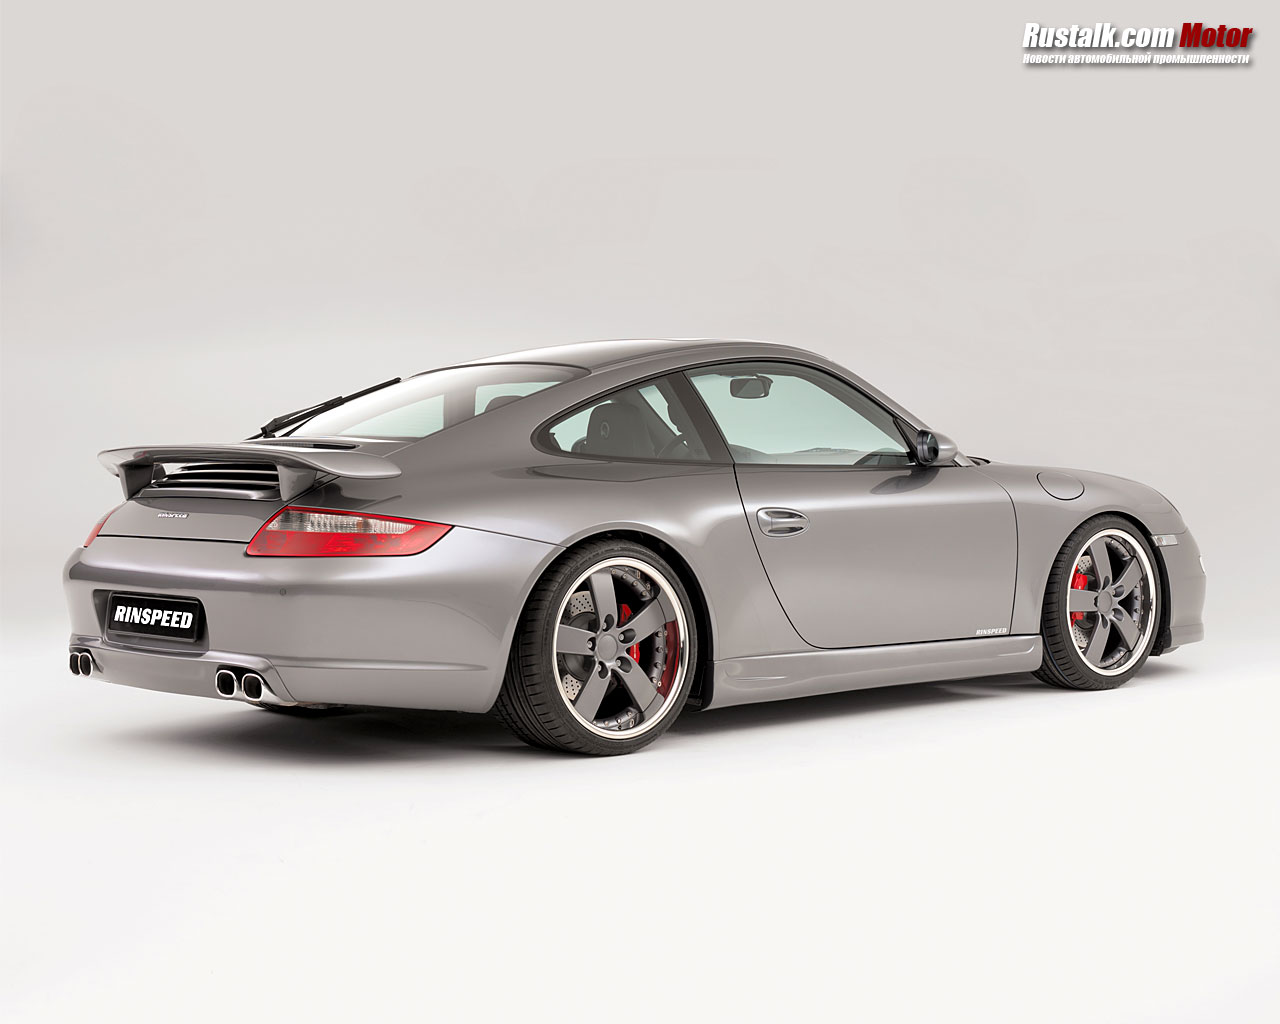 Rinspeed 997 Carrera photo 30233